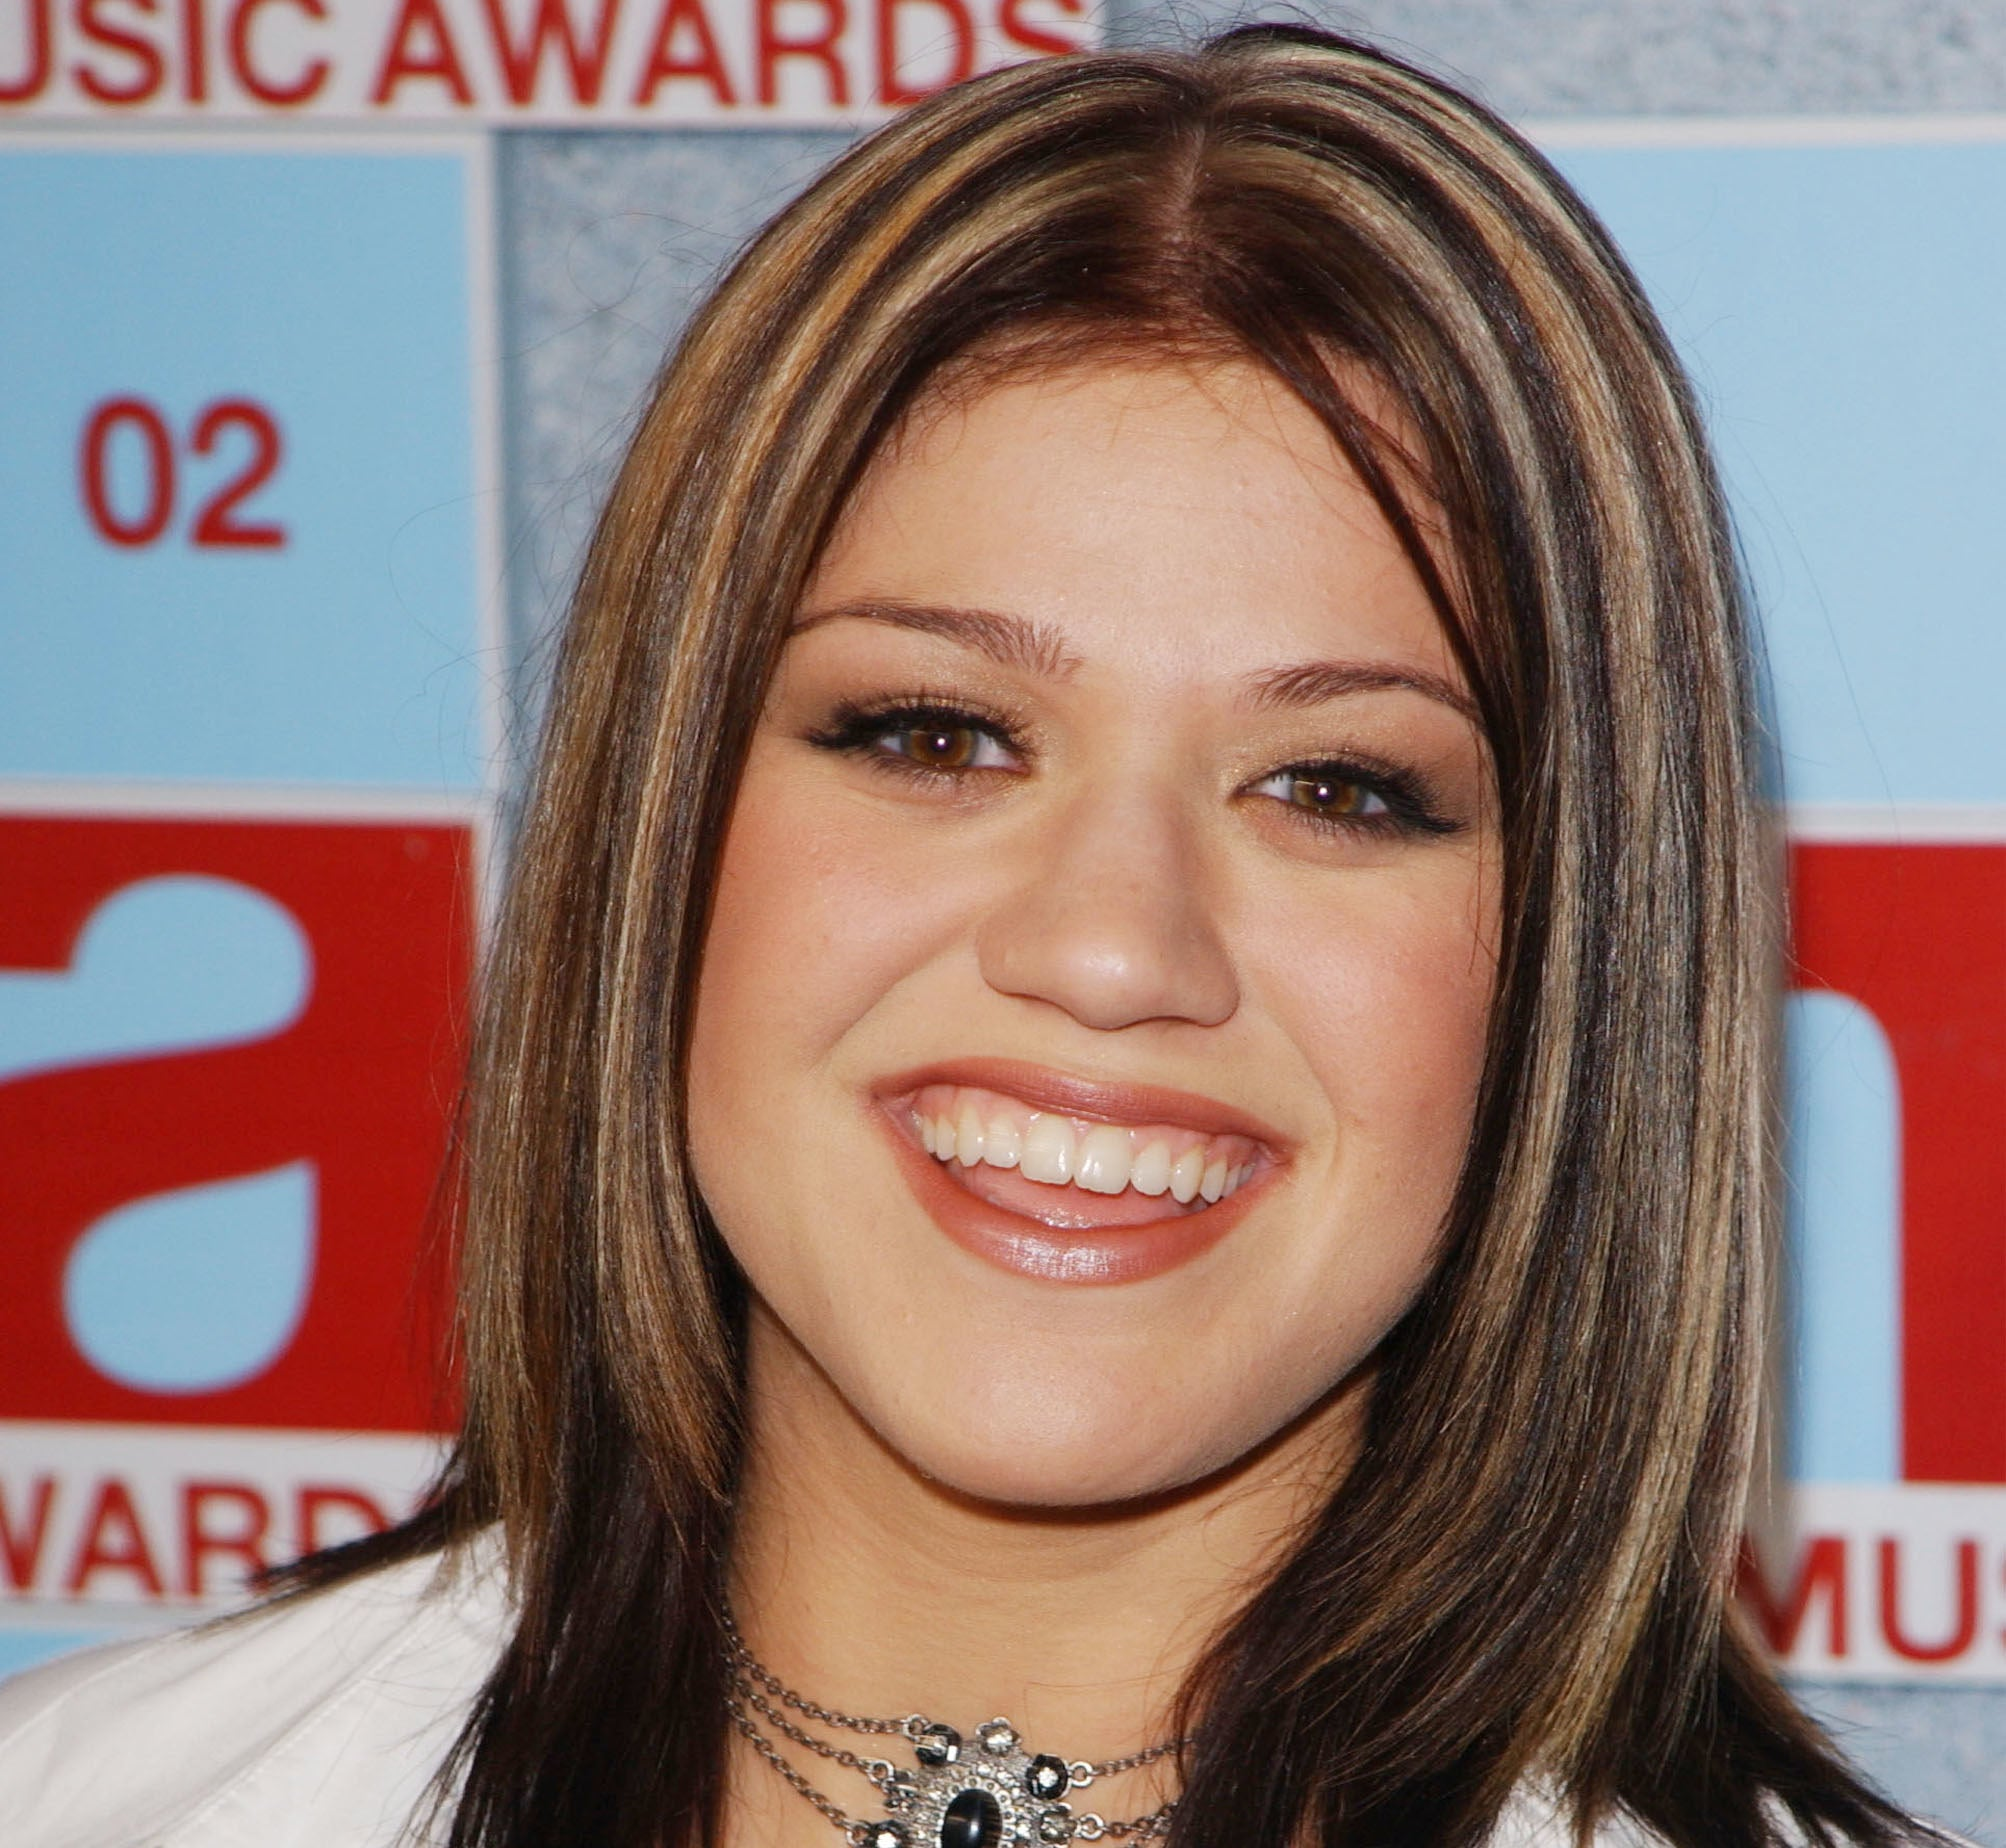 A photo of Kelly Clarkson on the red carpet of the VMAs with chunky highlights